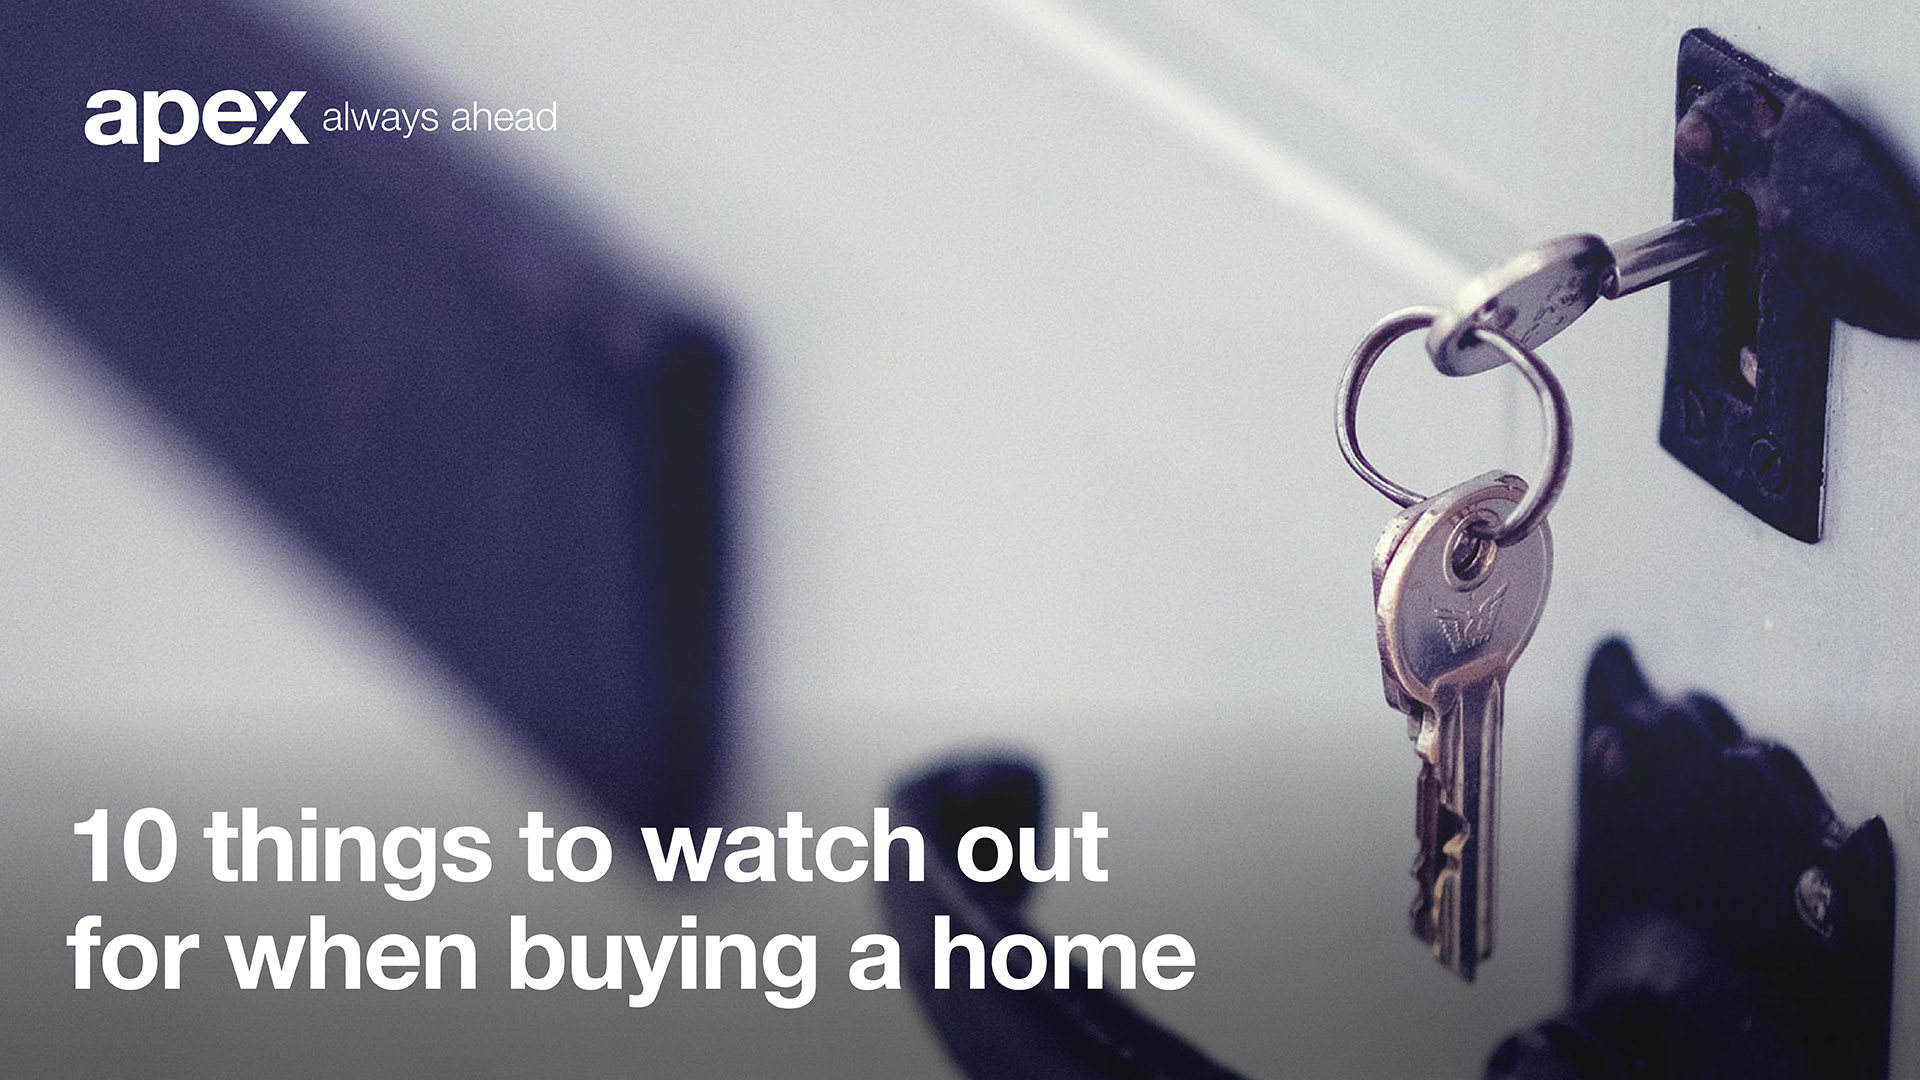 10 things to watch out for when buying a home